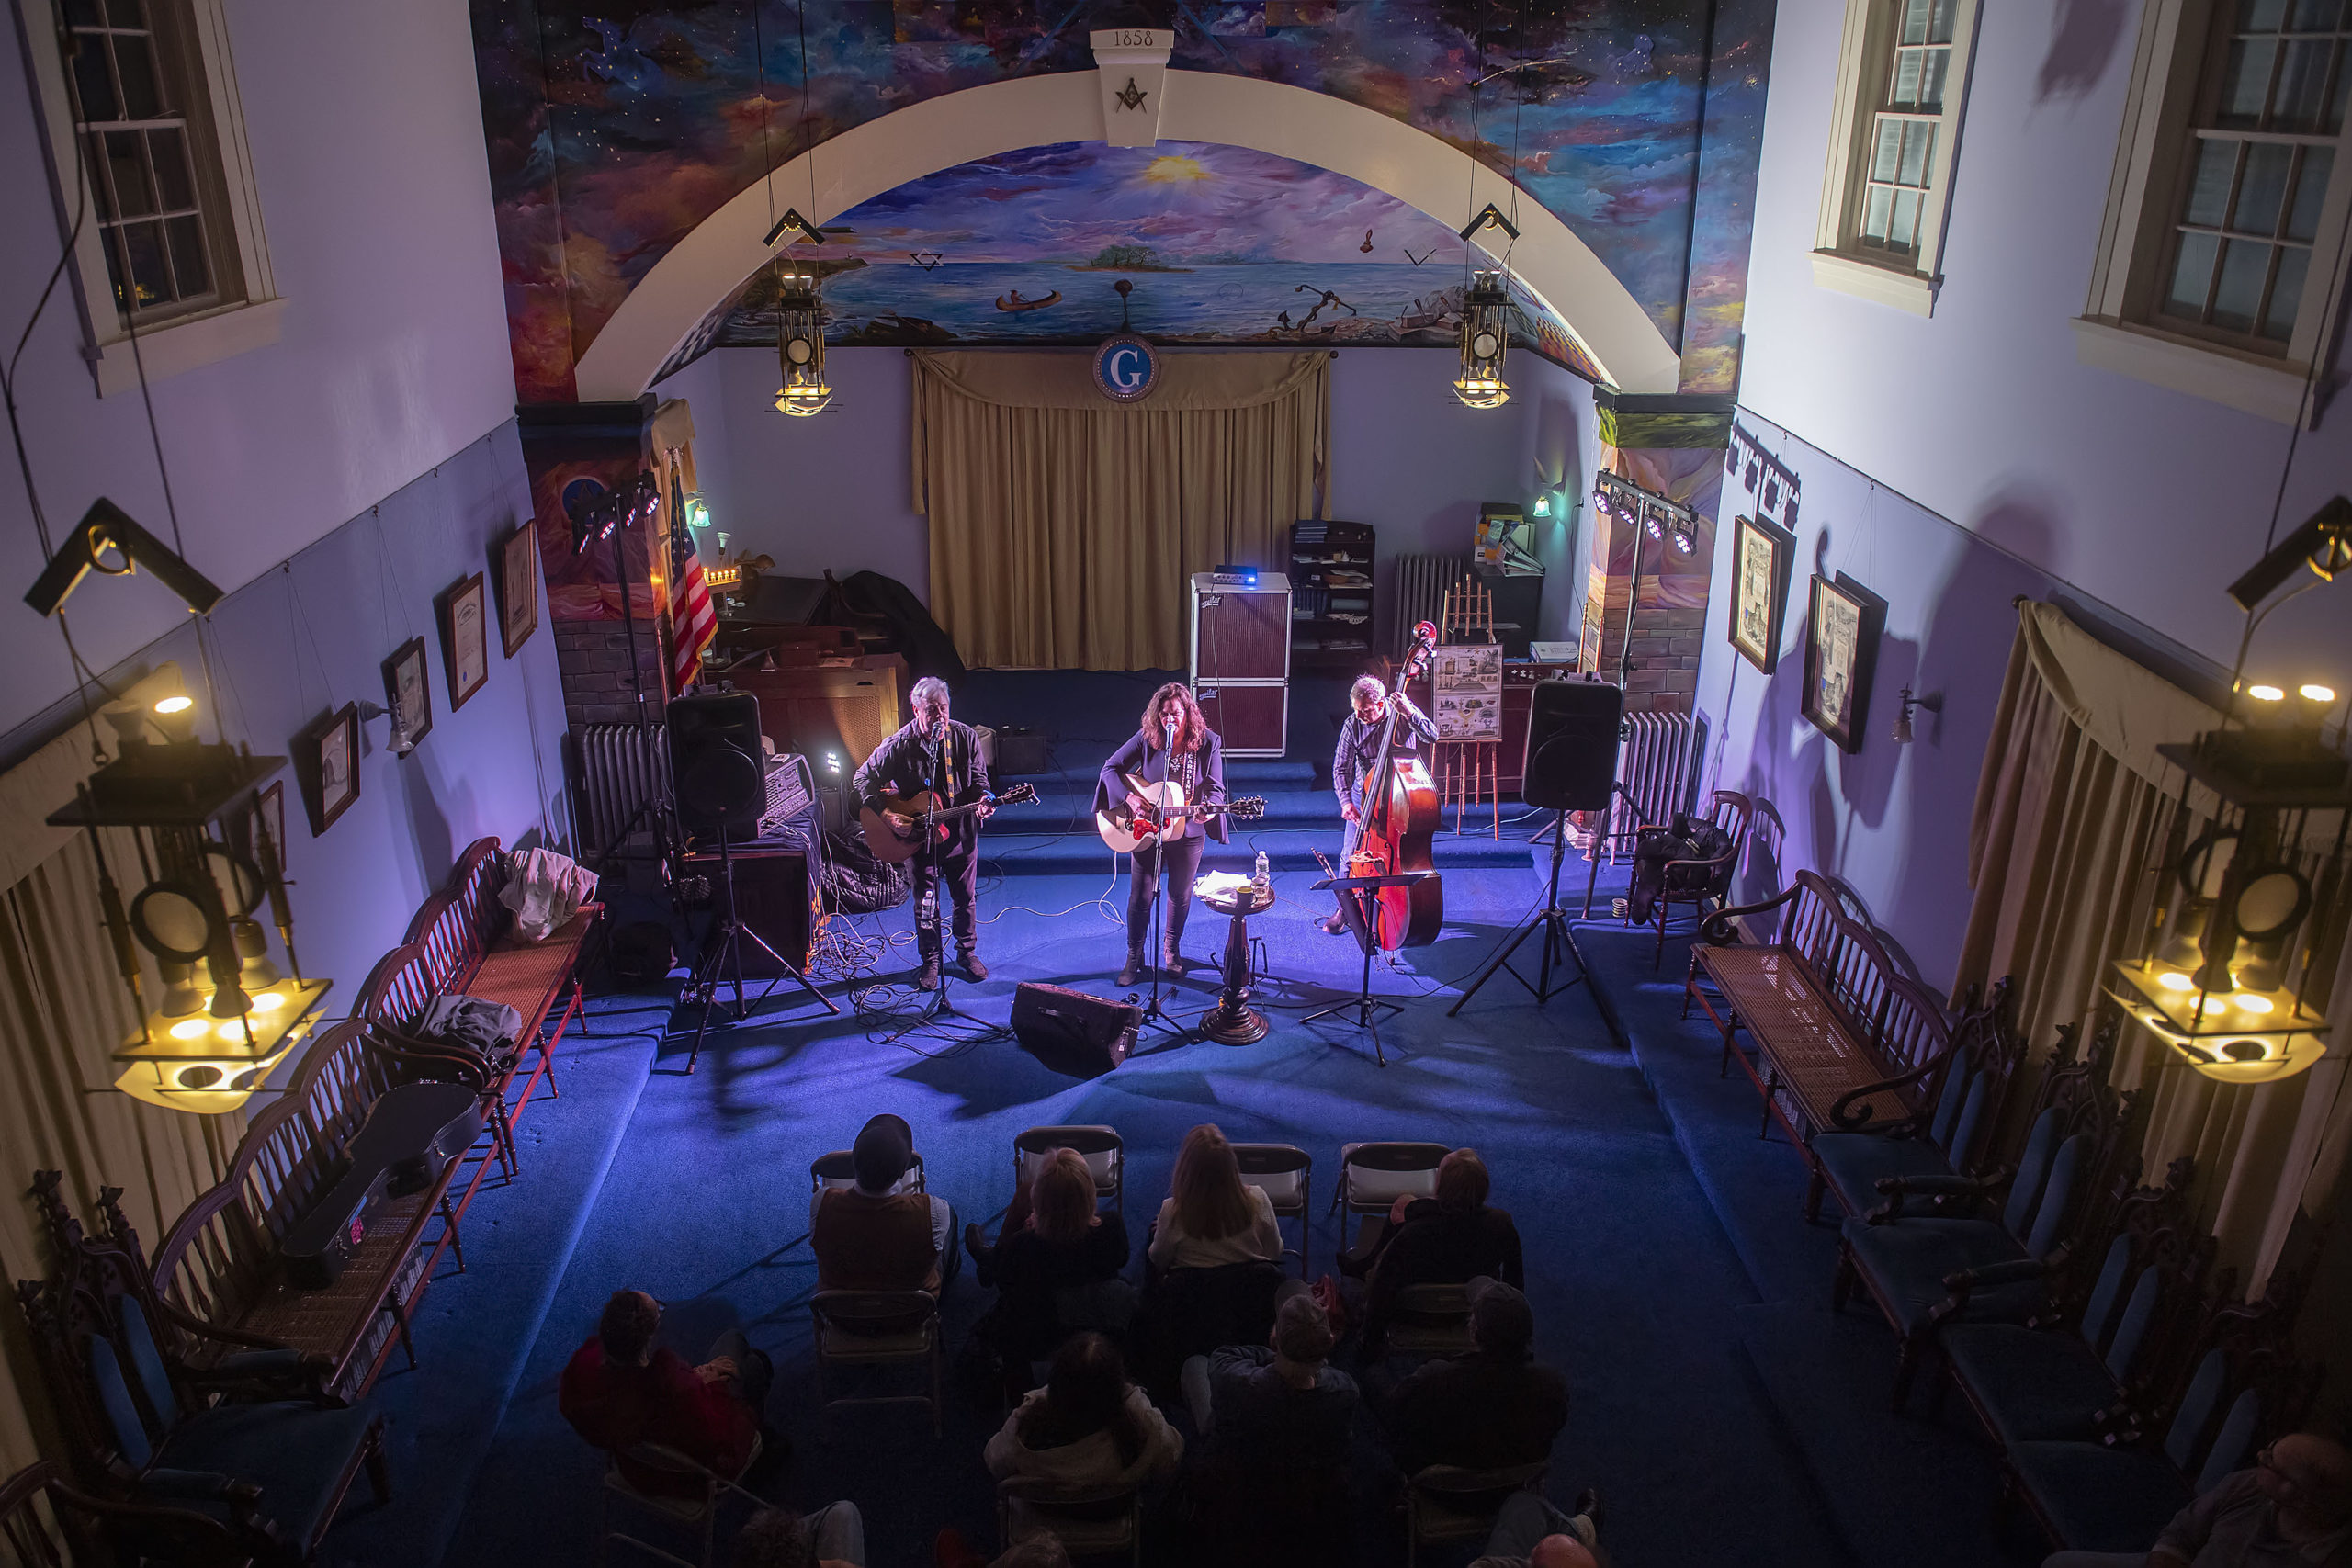 Caroline Doctorow and friends performed at the Masonic Temple located in Sag Harbor Whaling Museum on Saturday night.       MICHAEL HELLER